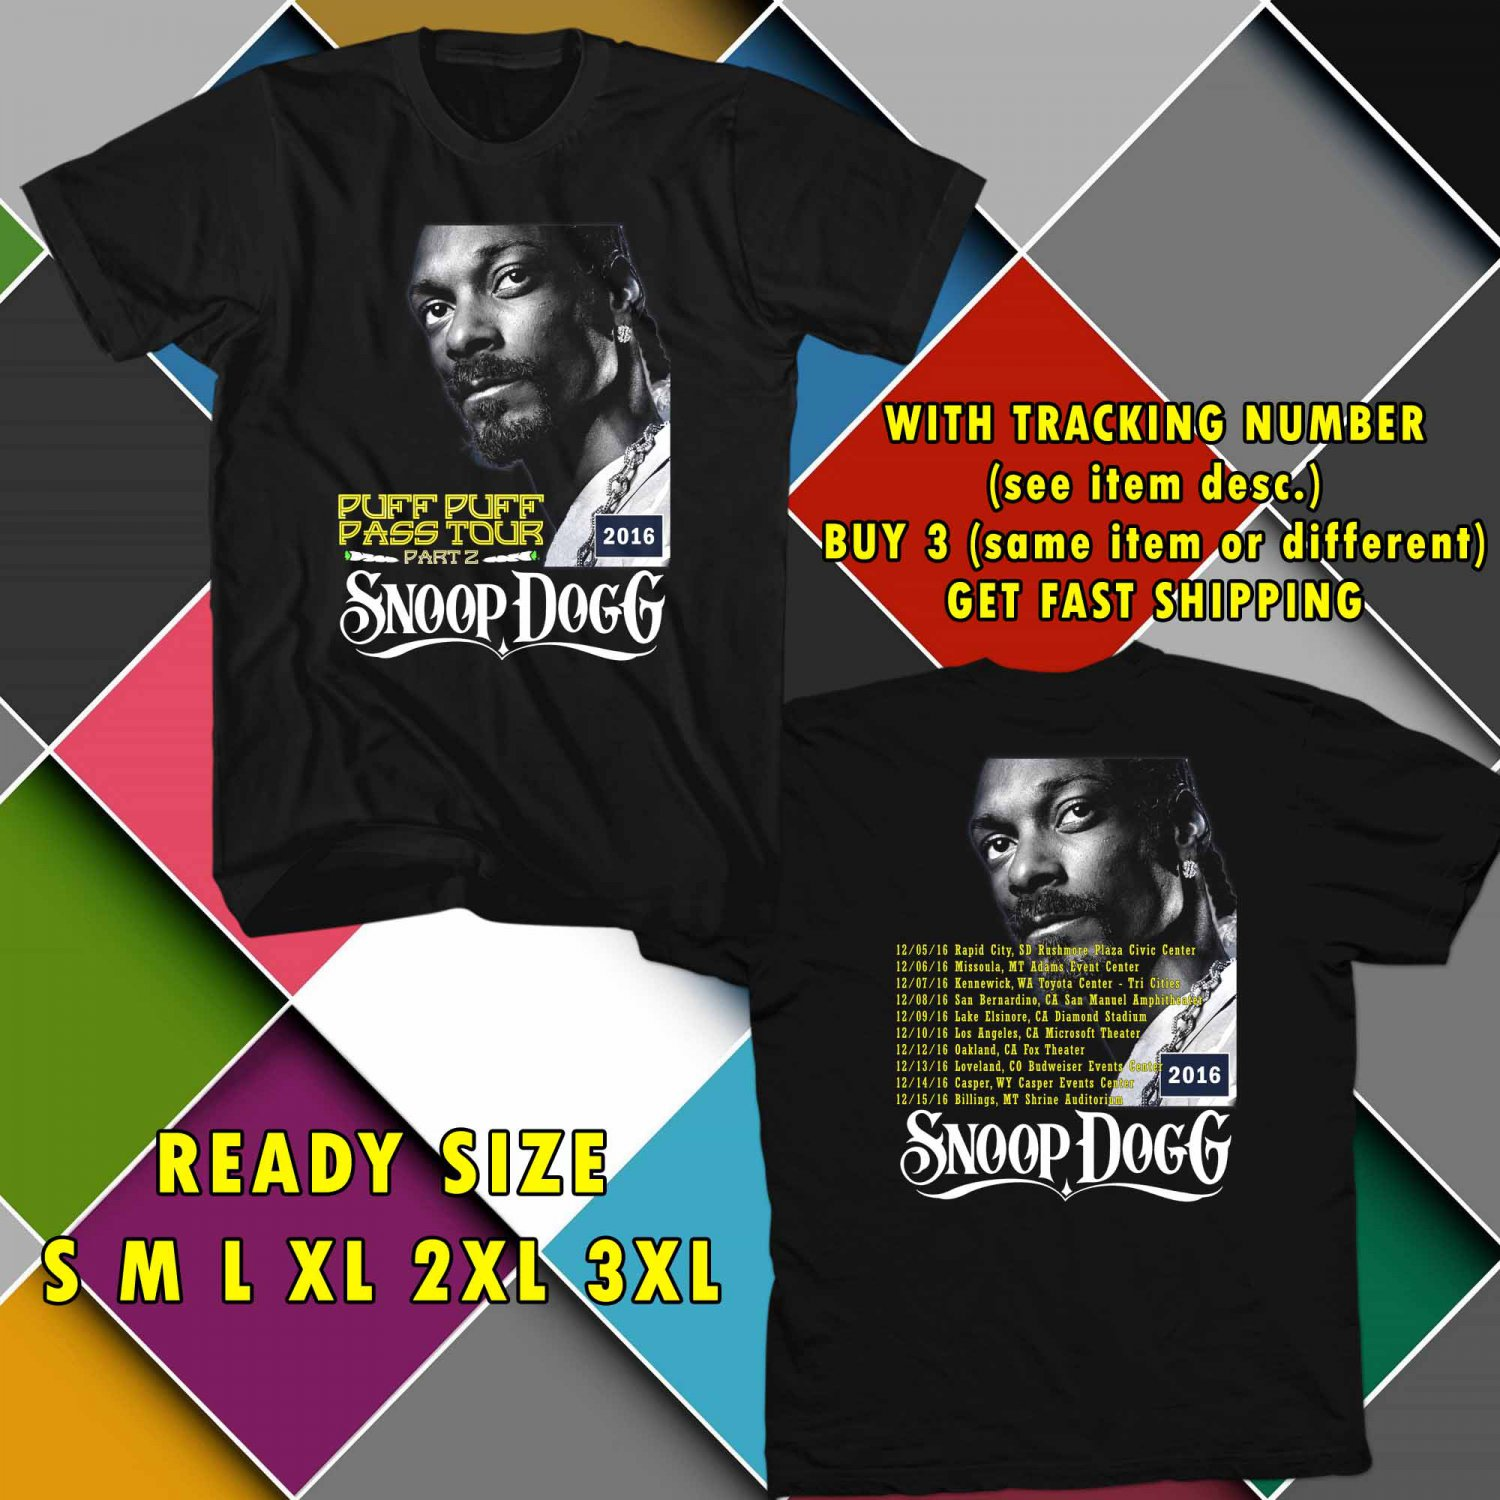 WOW SNOOP DOG PUFF PUFF PART 2 TOUR 2016 BLACK TEE S-3XL ASTR 154